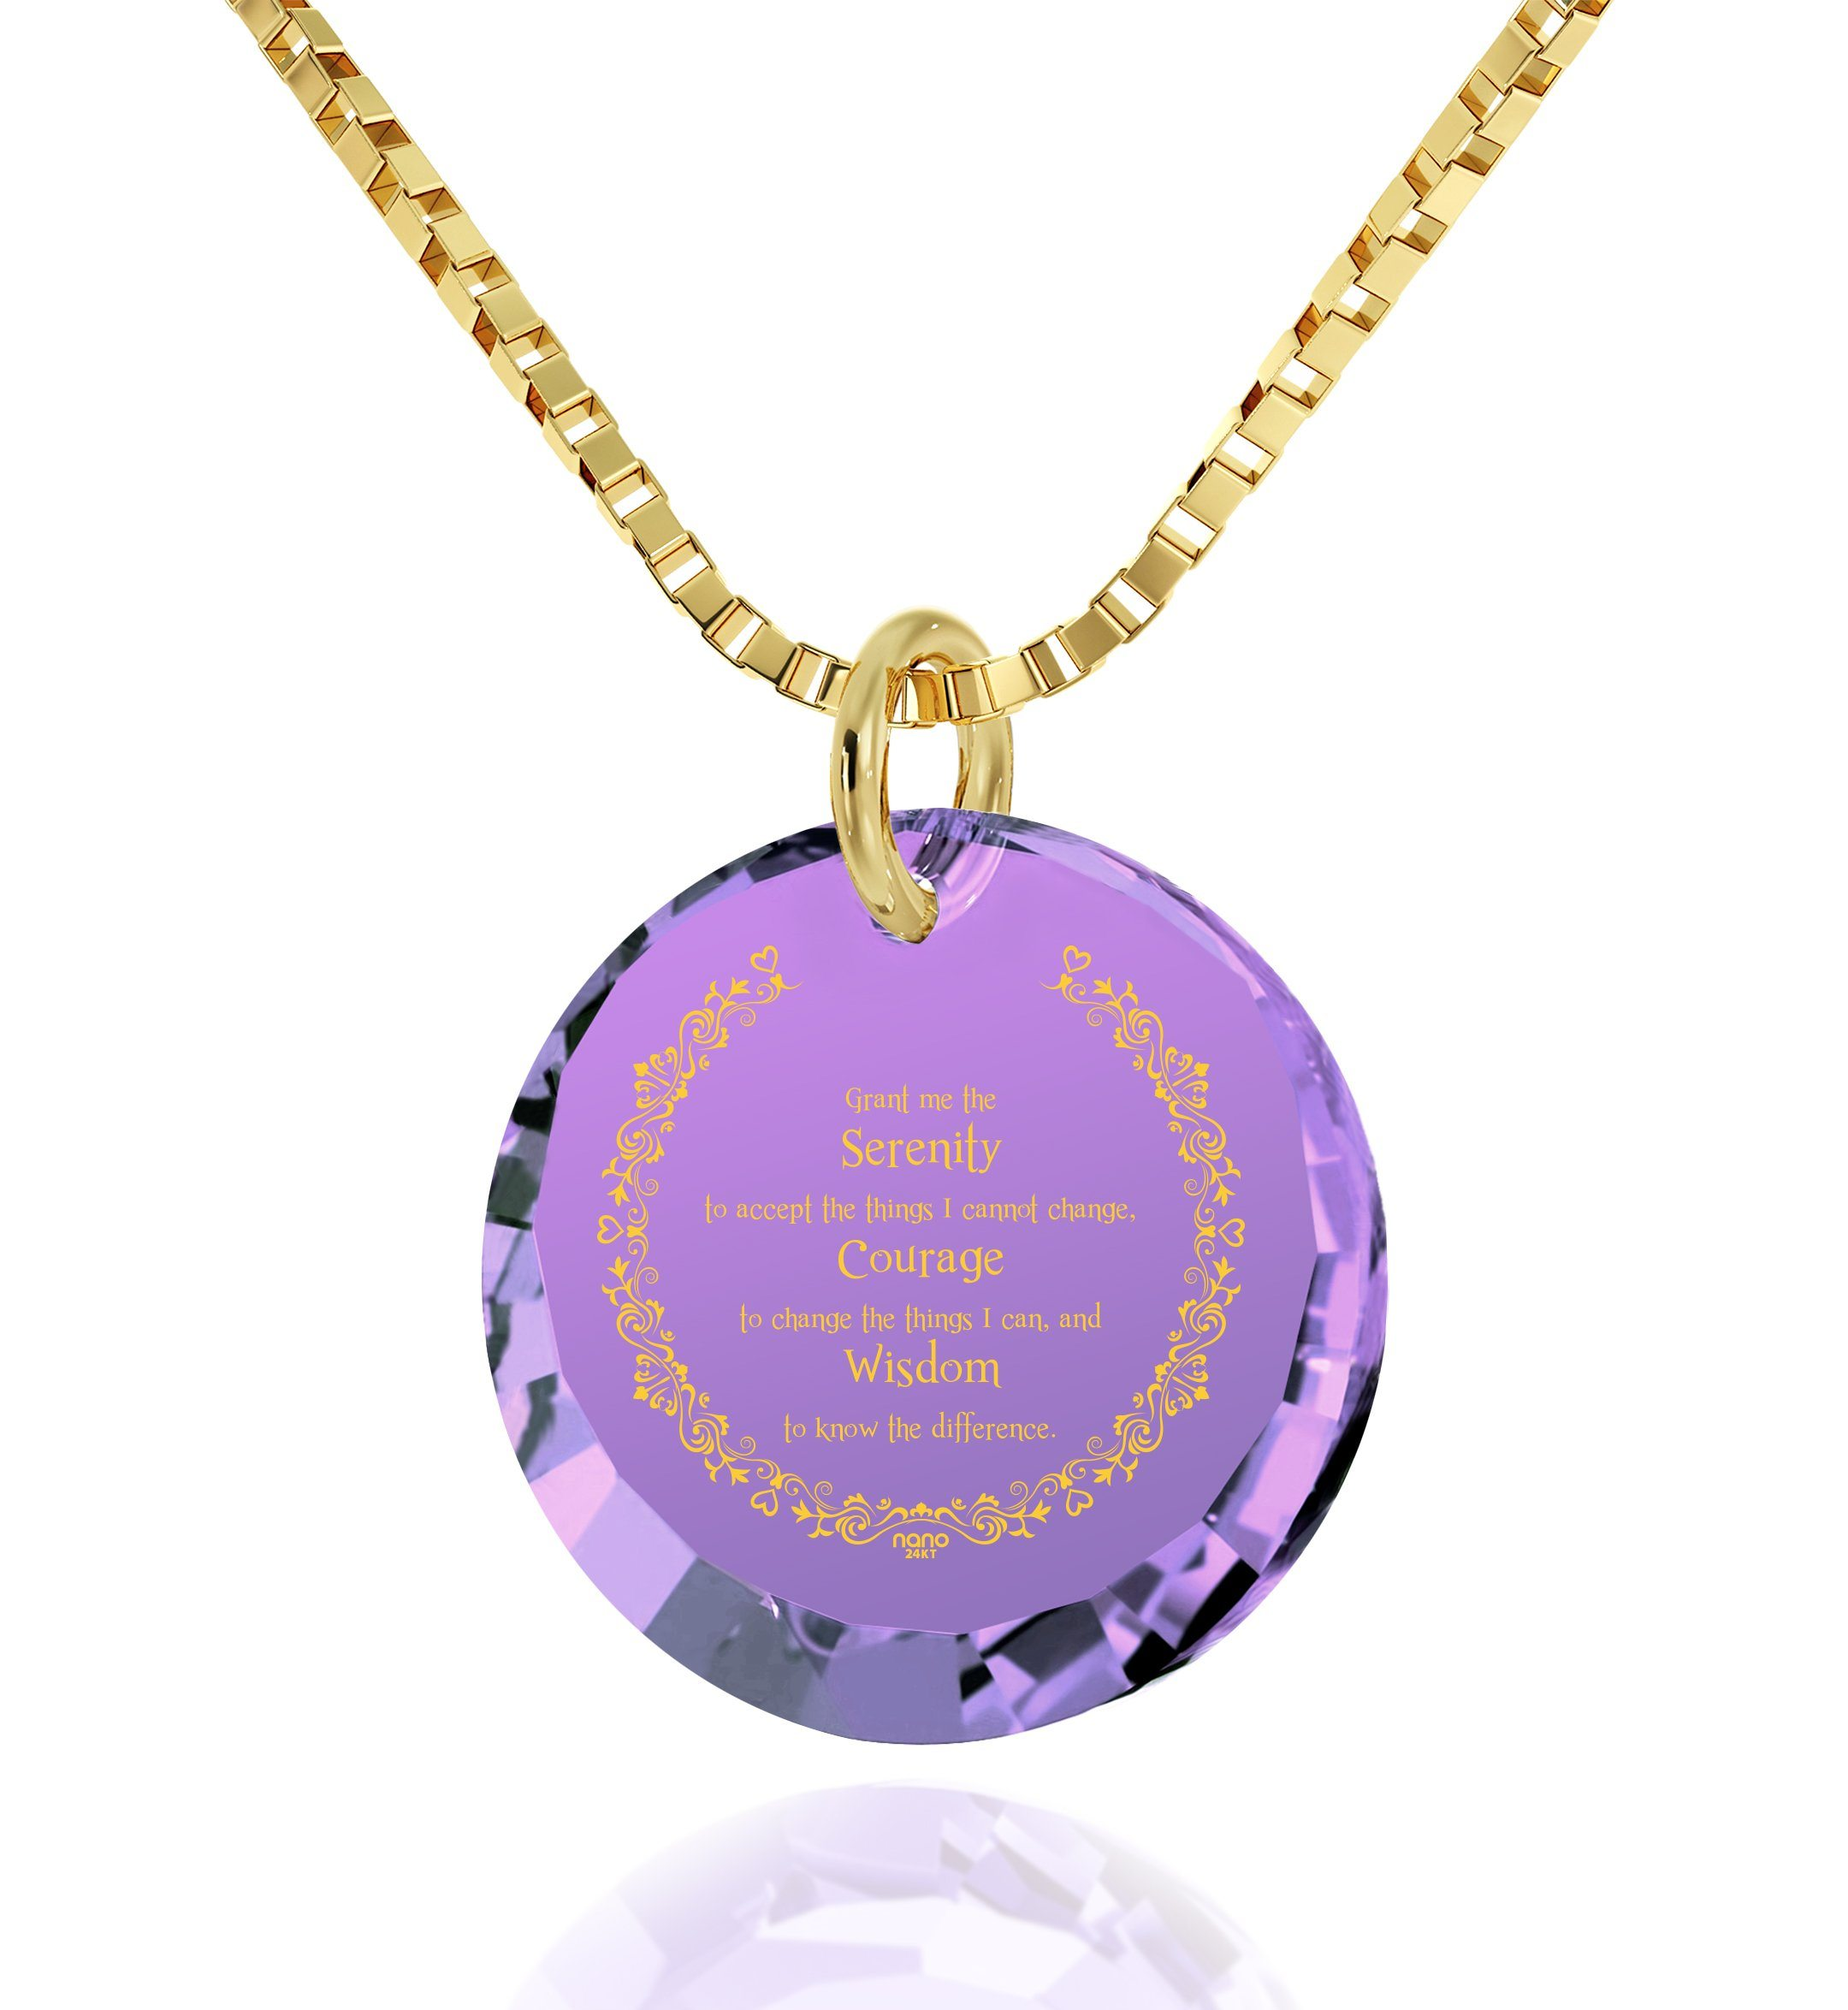 Serenity Prayer Pendant: Valentine's Day Gifts for Girlfriend, Gold Jewelry for Women, Nano Jewelry